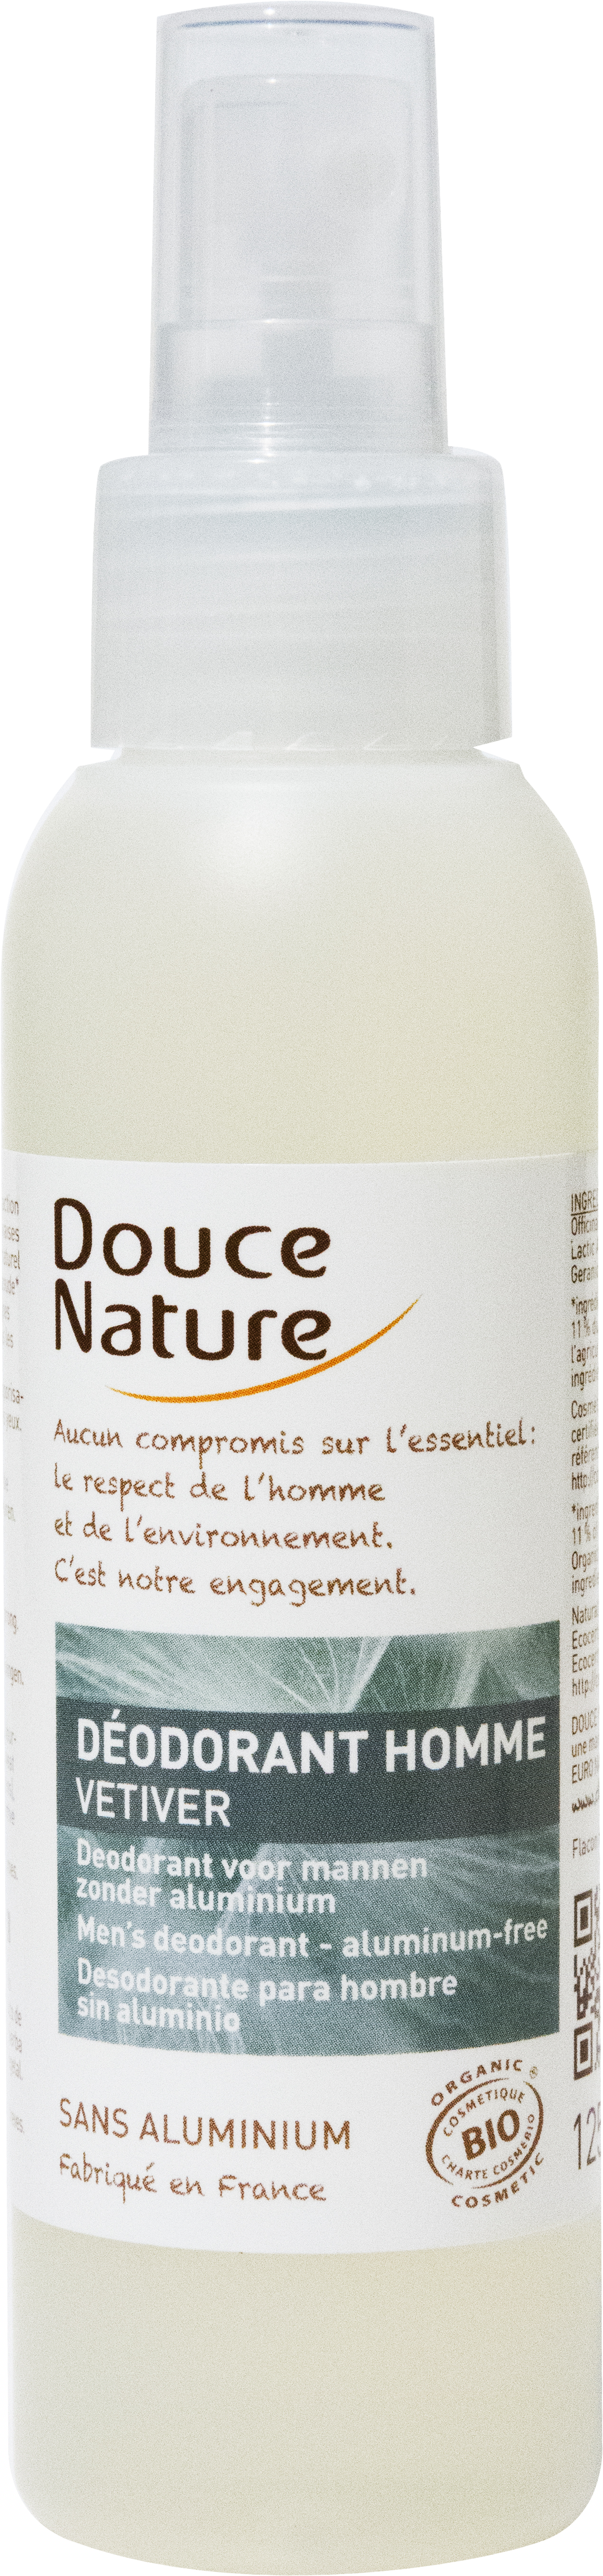 Déodorant spray pour homme Vétiver, Douce Nature (125 ml)